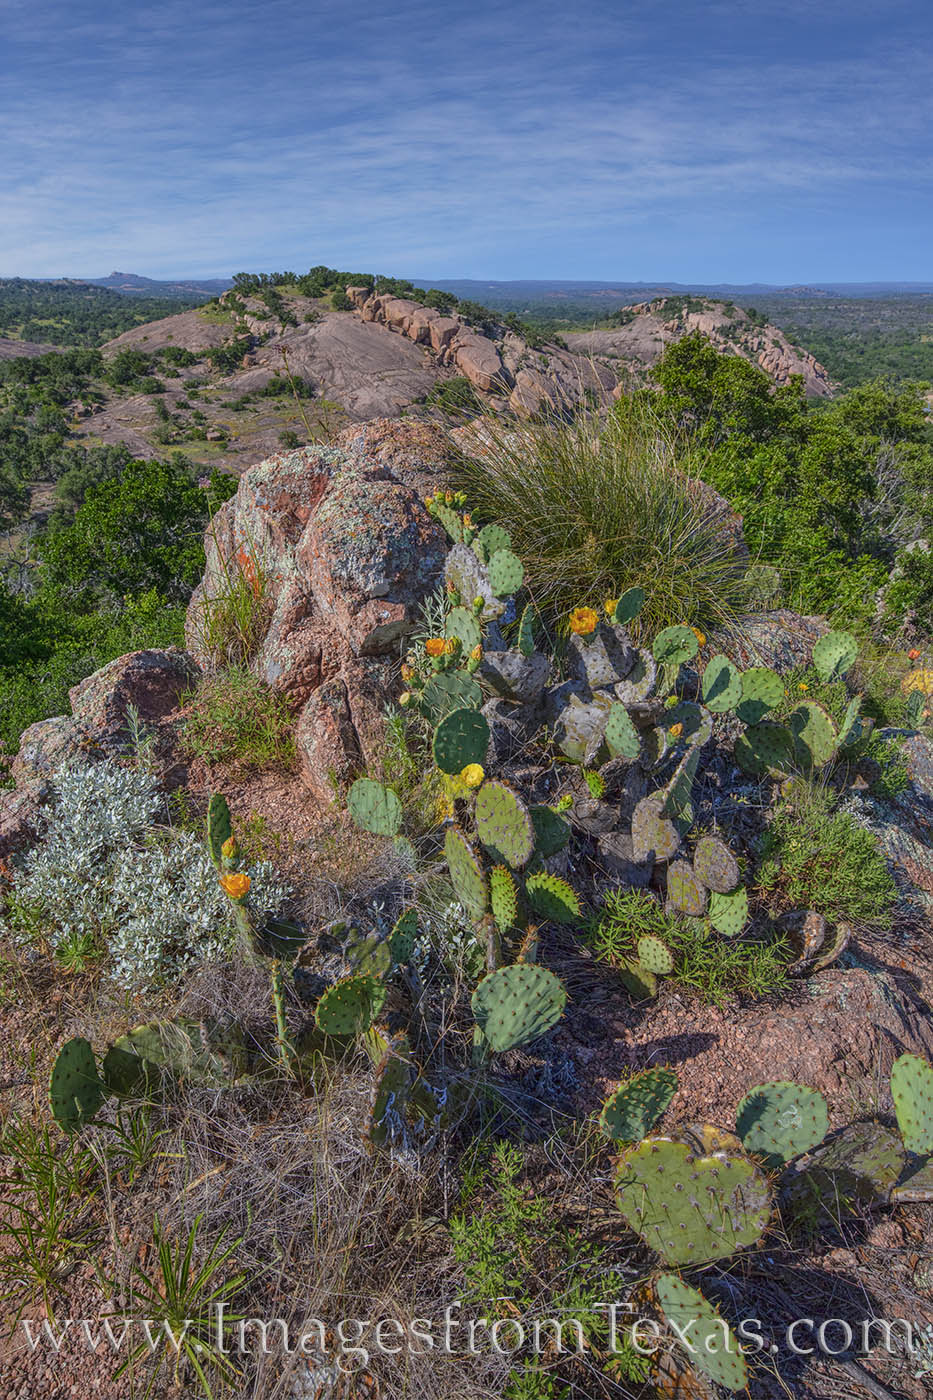 enchanted rock, turkey peak, freshman mountain, buzzard's roost, prickly pear, spring, bloom, wildfowers, photo